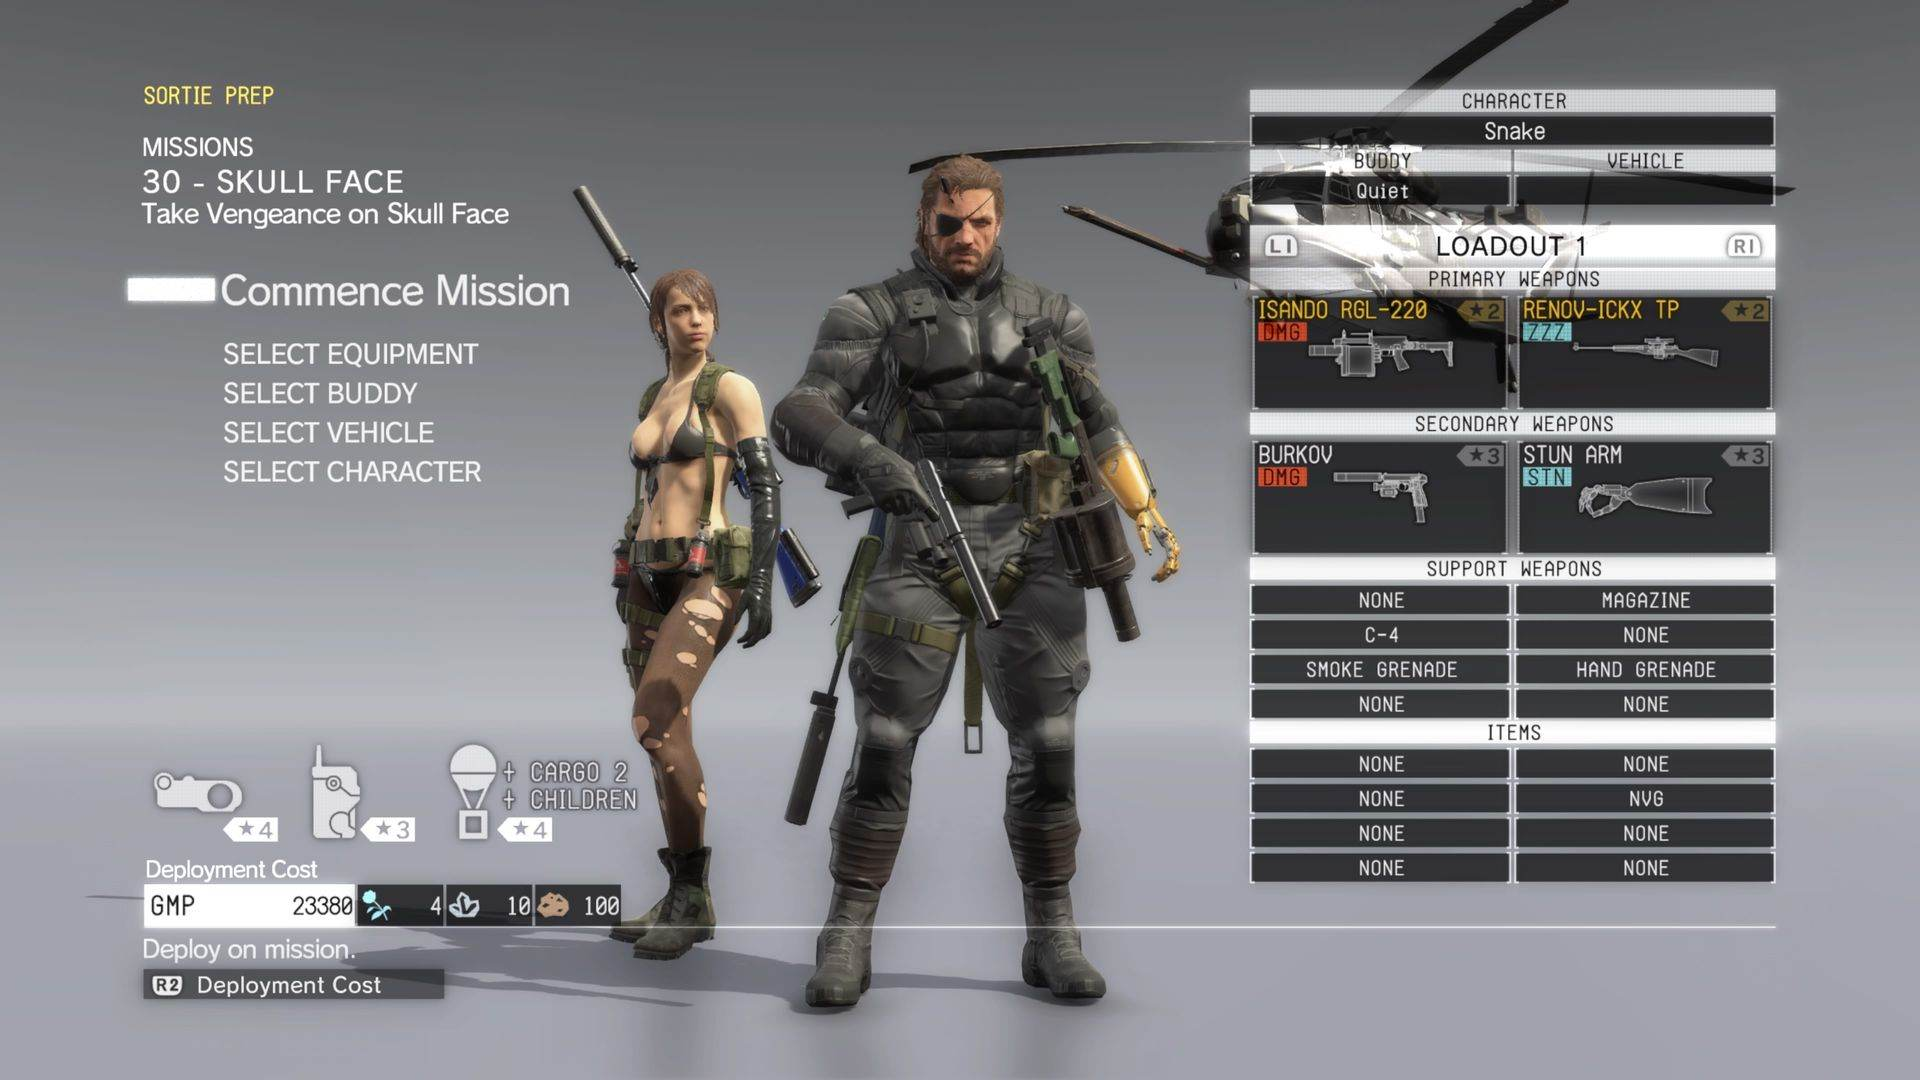 Metal Gear Solid 5 Skull Face missione